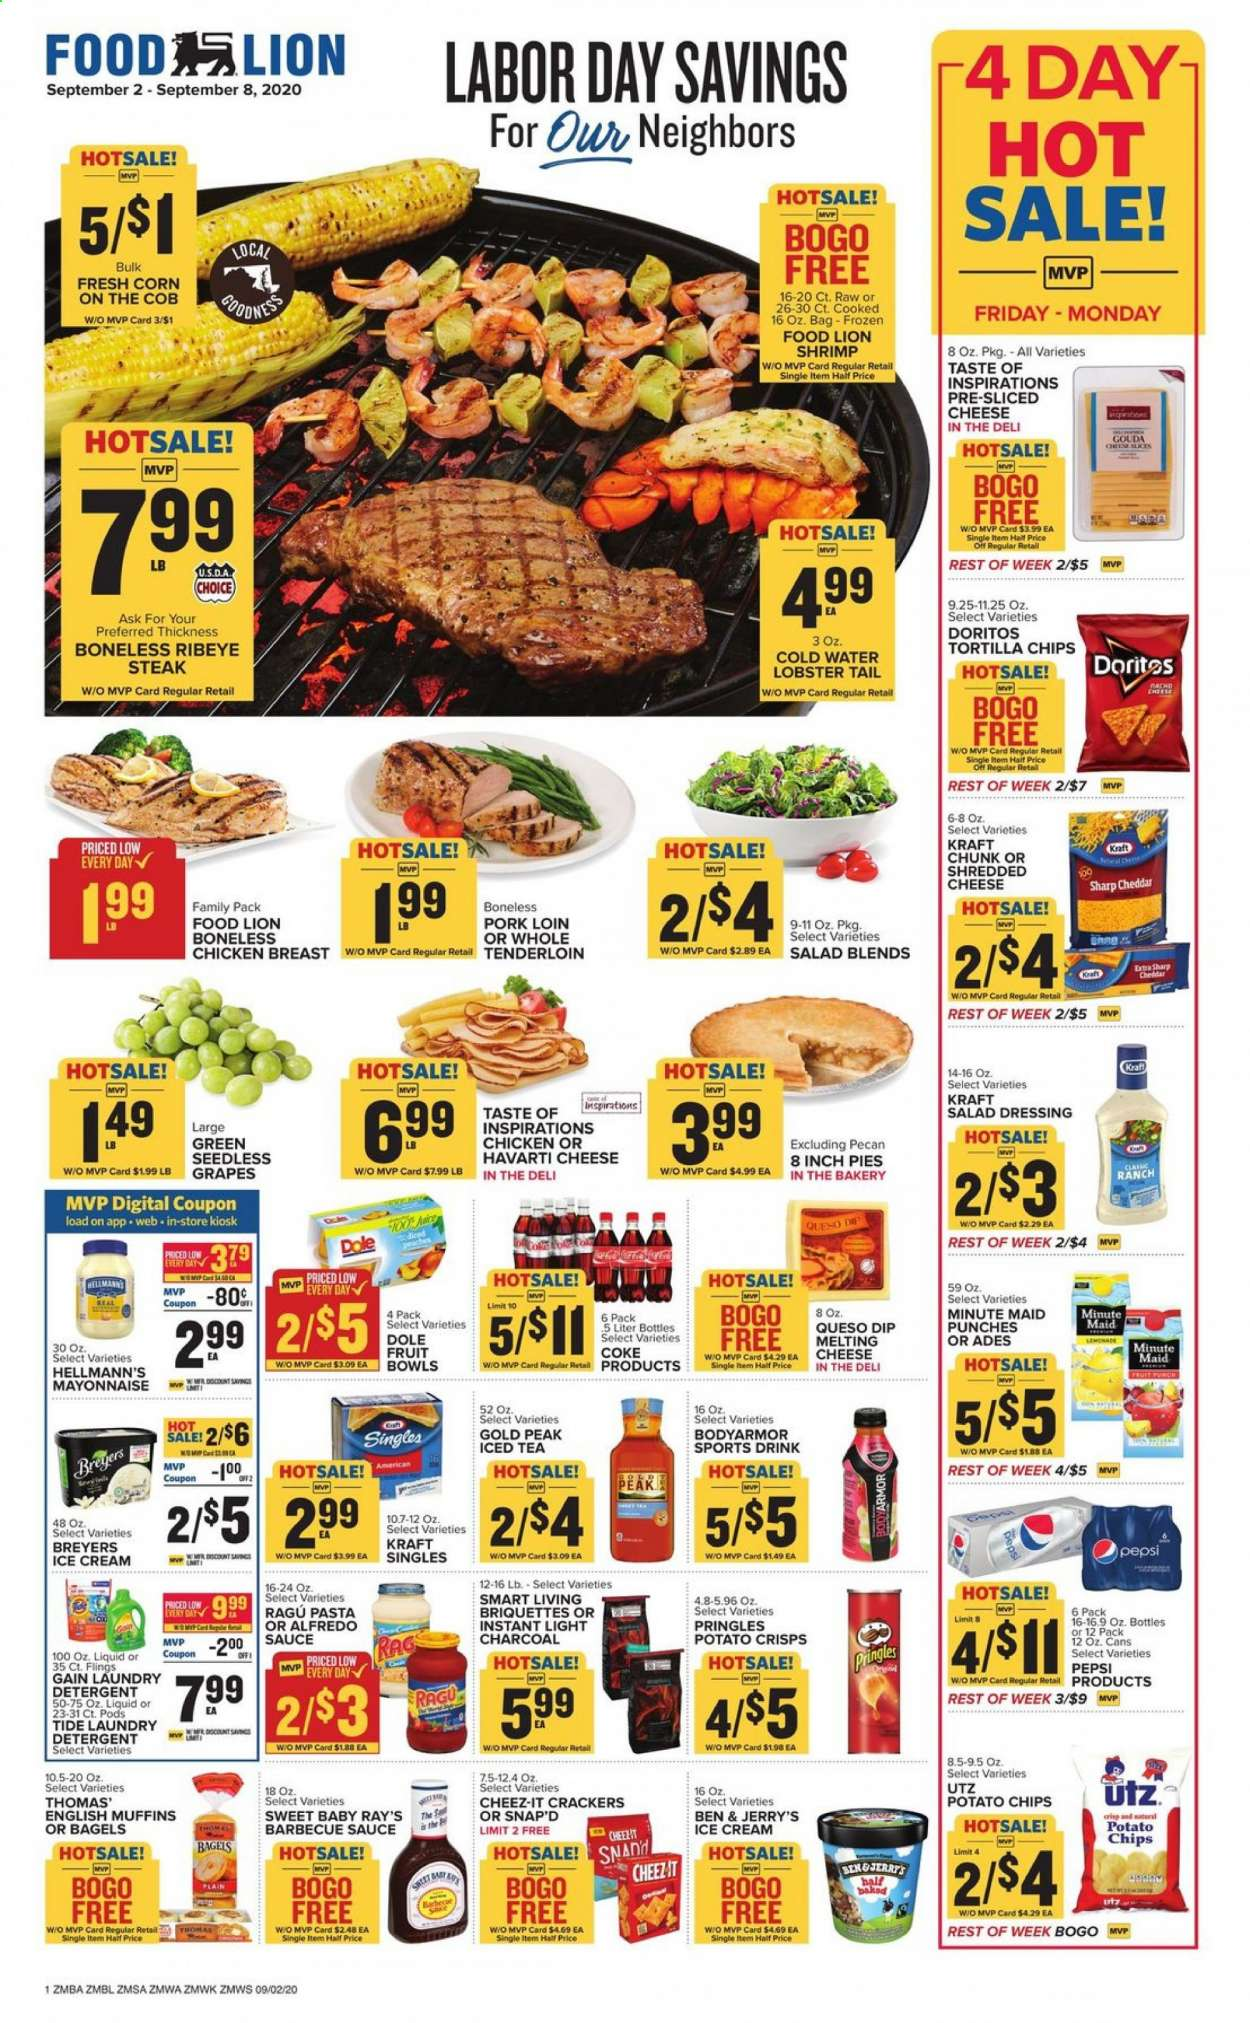 Food Lion Flyer - 09.02.2020 - 09.08.2020 - Sales products - alfredo sauce, bagels, barbecue sauce, bowl, coca-cola, corn, crackers, detergent, doritos, english muffins, frozen, gain, gouda, grapes, lobster, mayonnaise, muffins, salad dressing, seedless grapes, sharp, shredded cheese, shrimp, sliced cheese, tea, tide, tortilla chips, havarti cheese, ice cream, pork loin, pork meat, potato crisps, potato chips, pringles, charcoal, cheddar, chicken, chicken breast, peaches, pepsi, chips, steak, tenderloin, cheese, juice, dressing, iced tea, pasta, salad, briquettes, punch, sauce, drink, fruit, dole, liquid, laundry detergent, lobster tail, family pack, shrimps, barbecue, peache. Page 1.